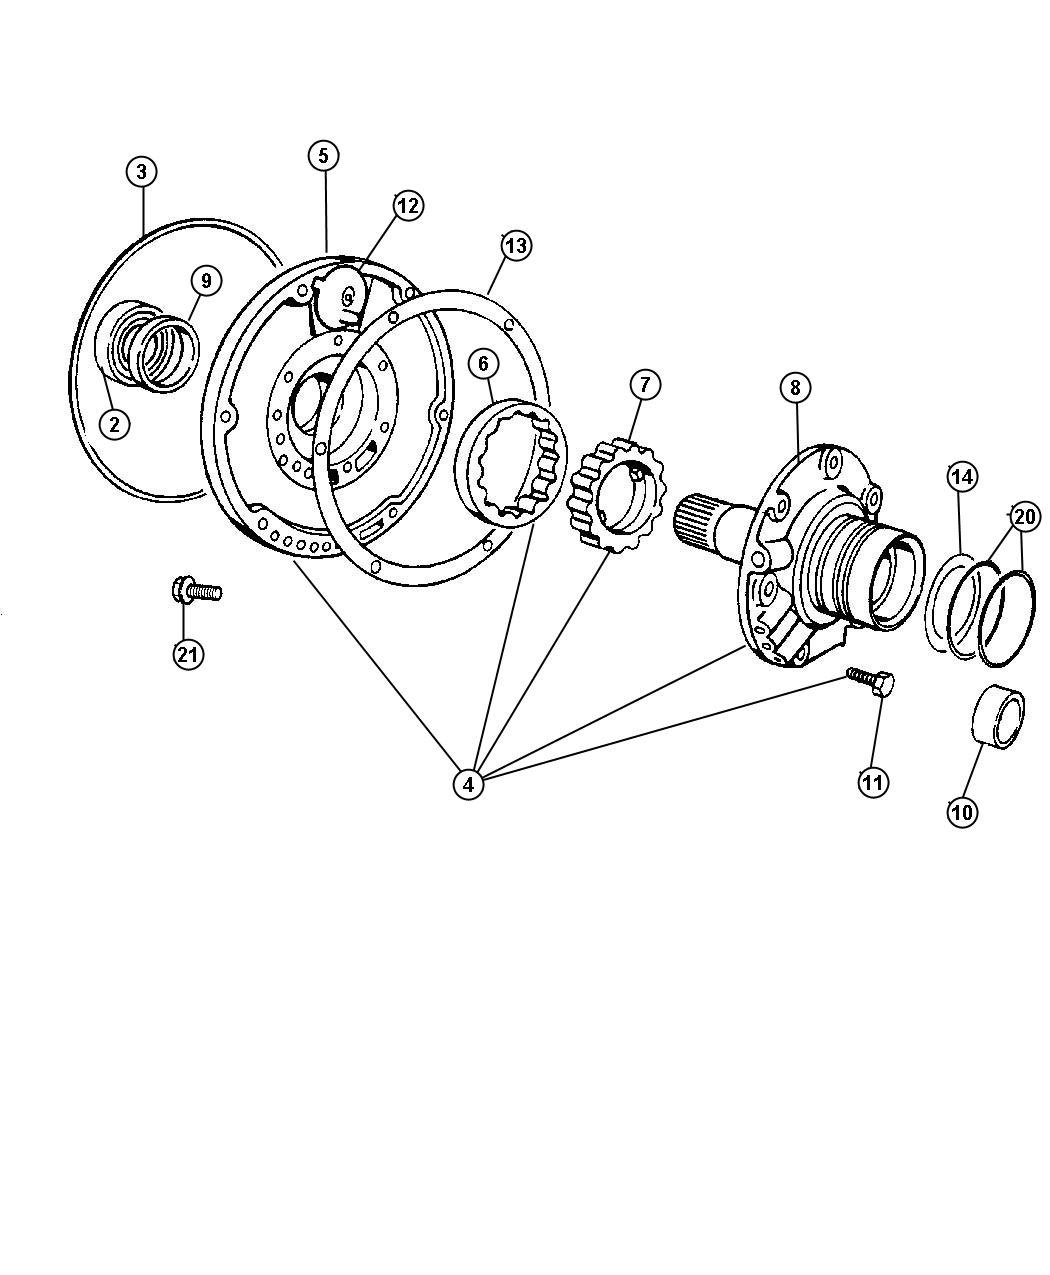 1999 Dodge Stratu Engine Diagram